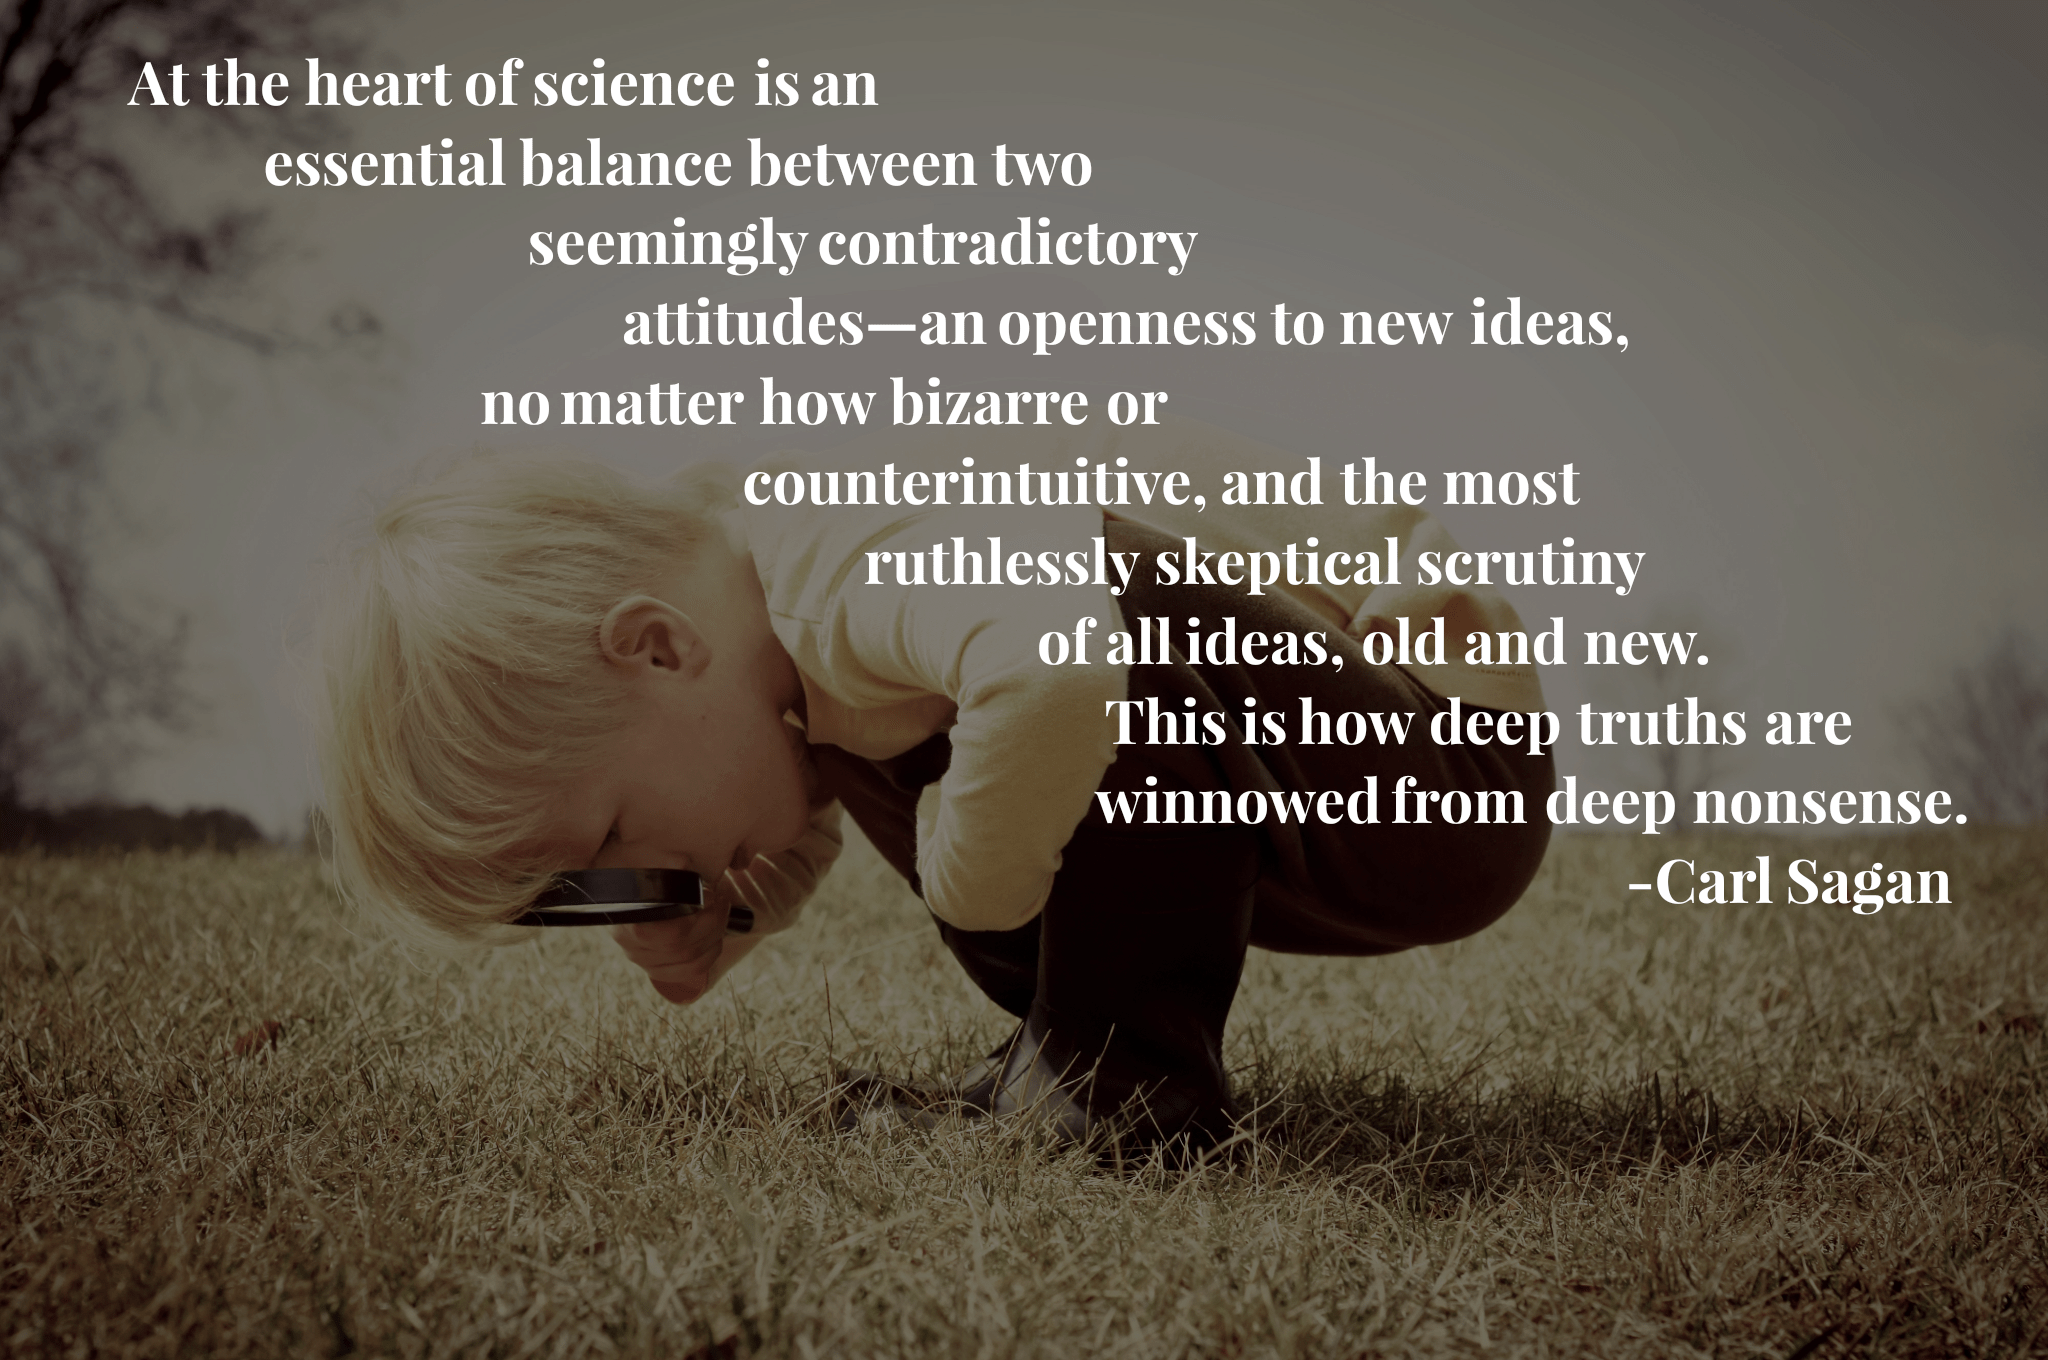 """At the heart of science is an essential balance between two seemingly contradictory attitudes – an openness to new ideas, no matter how bizarre or counterintuitive, and the most ruthlessly skeptical scrutiny of all ideas, old and new…"" -Carl Sagan [2048×1360]"